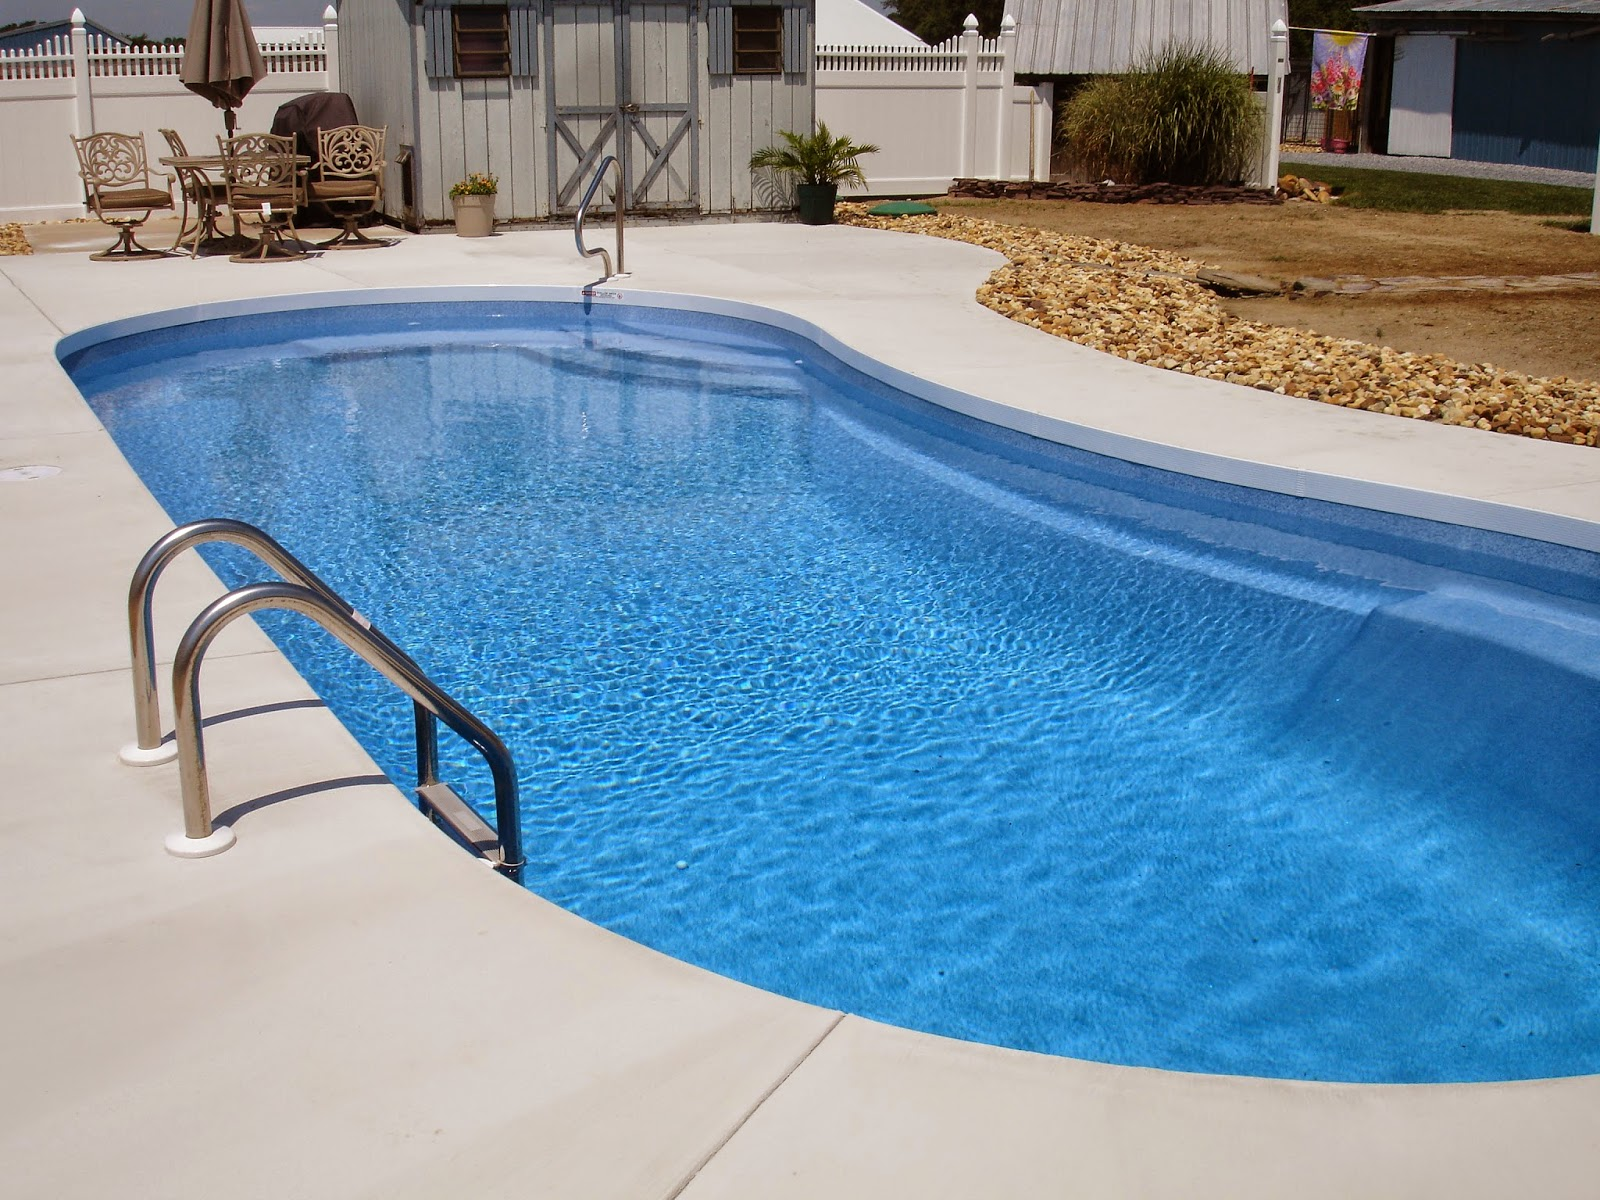 General Swimming Pool Information How Do Pool